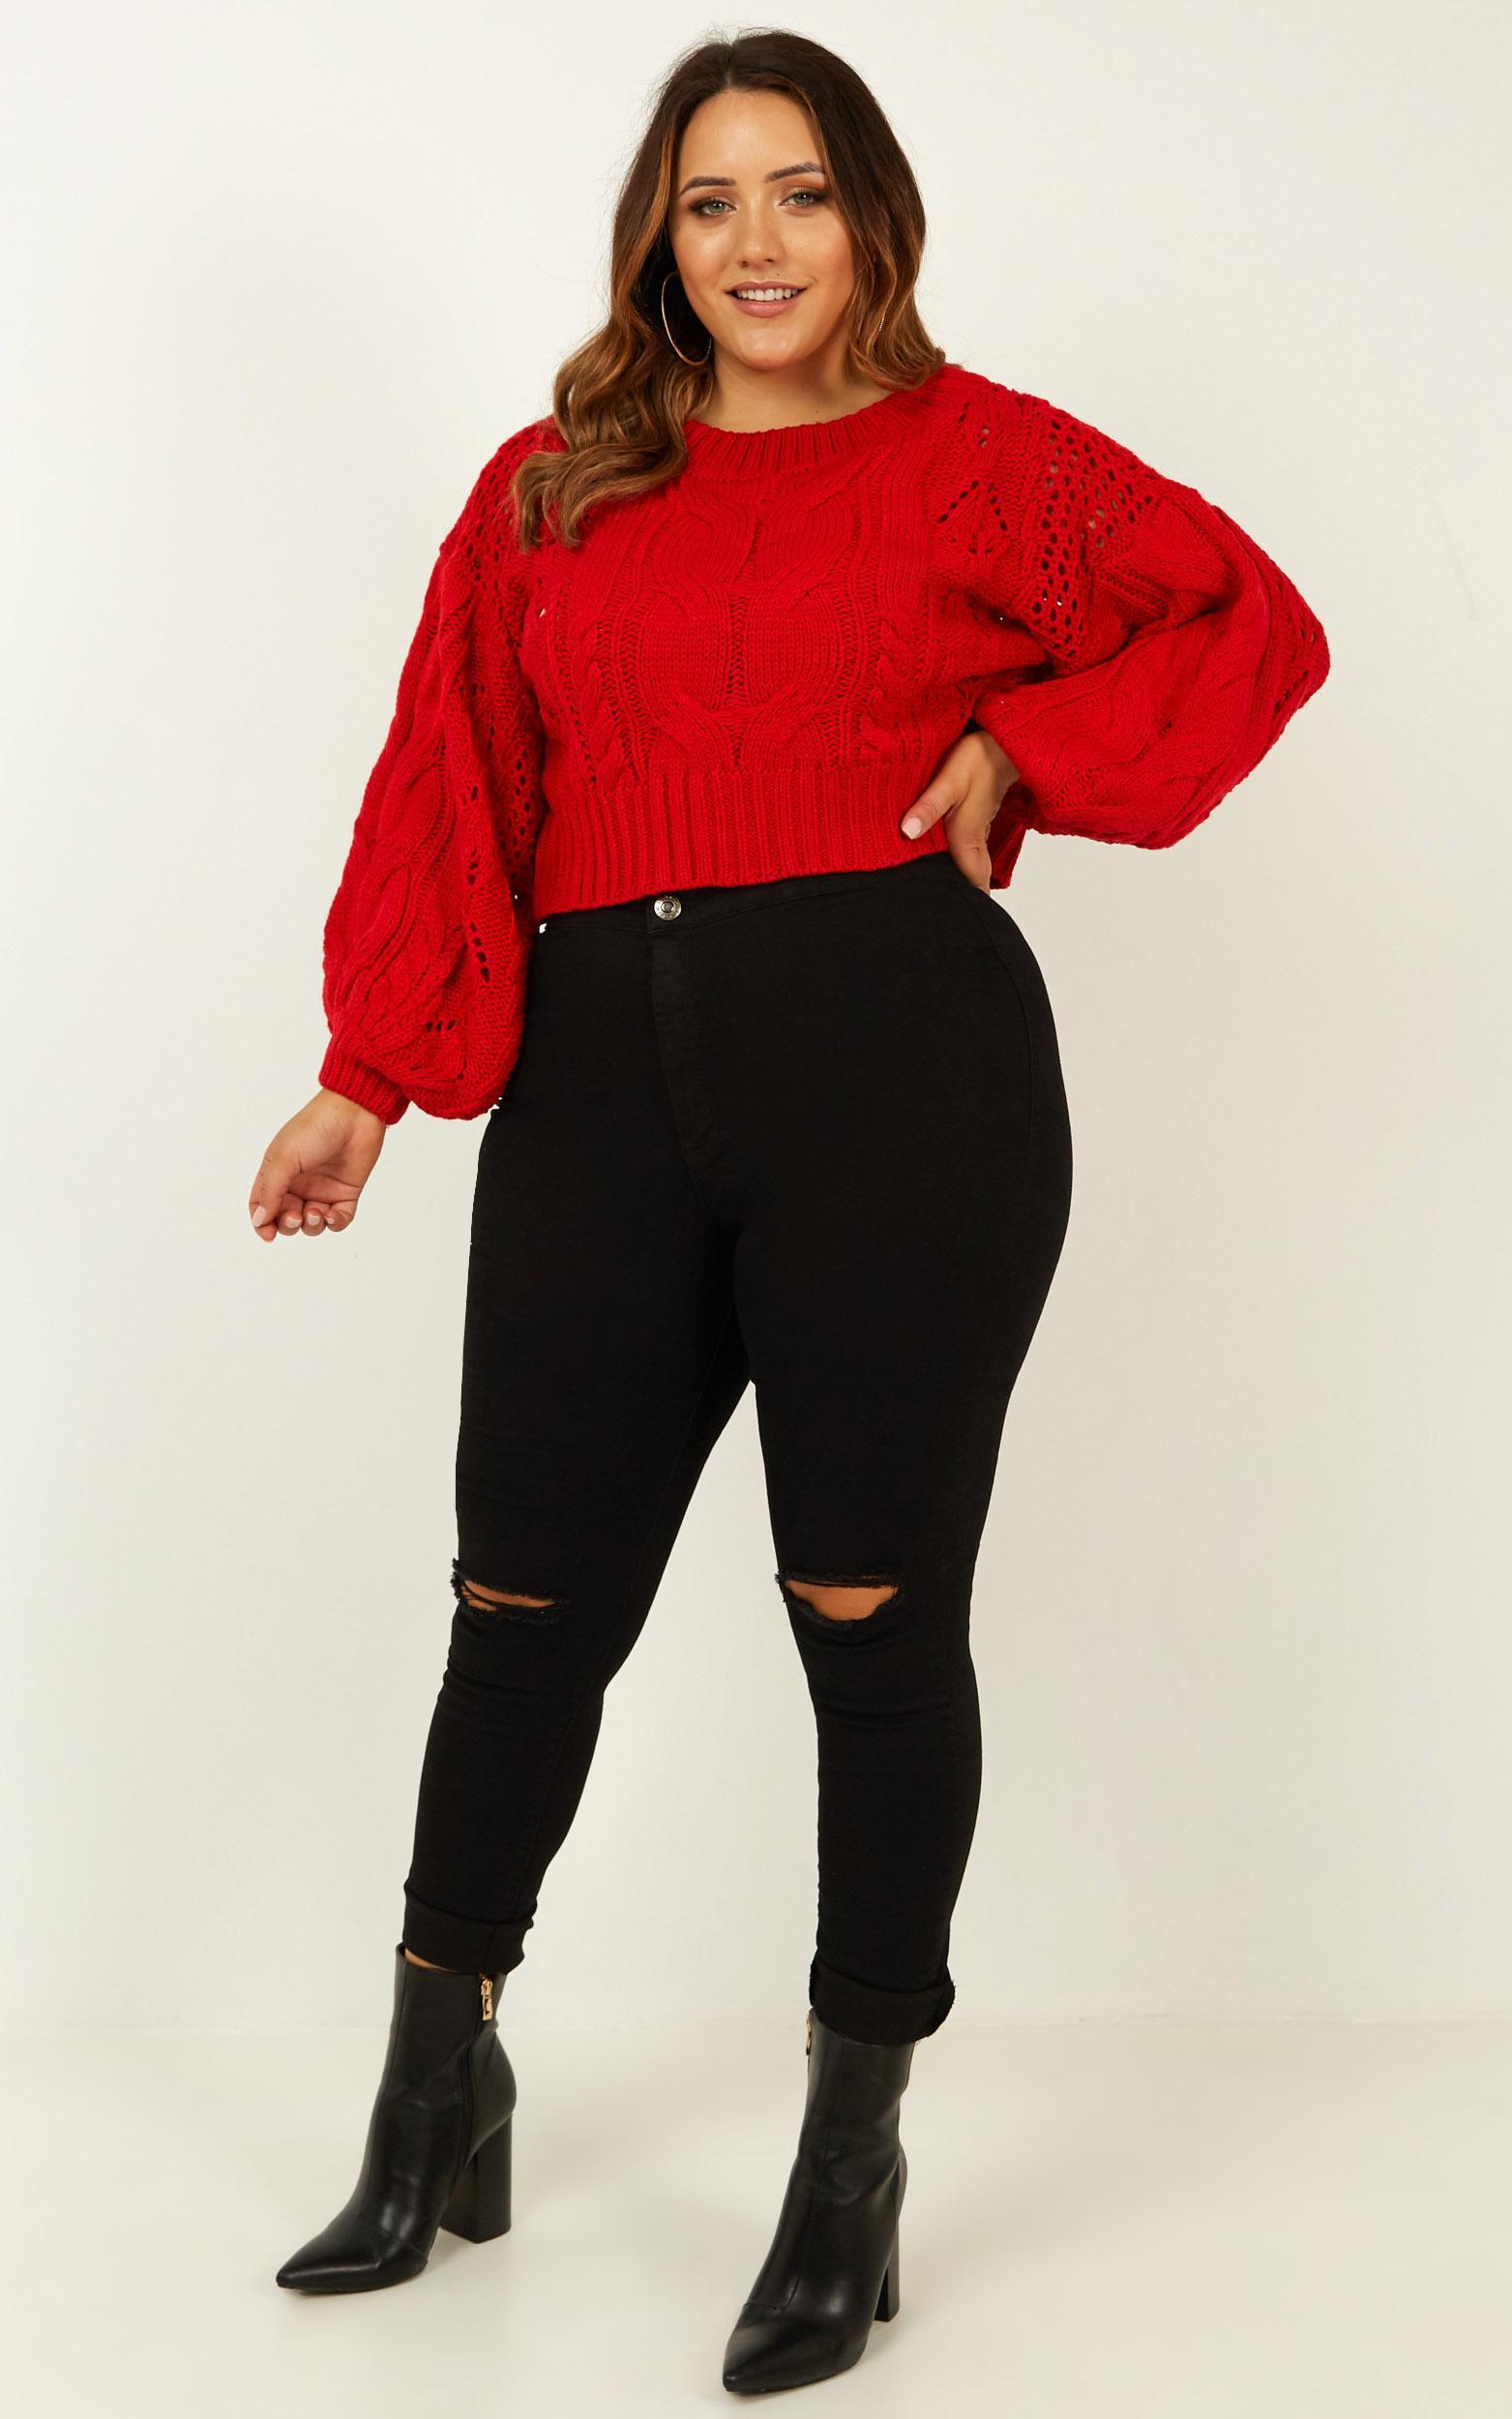 Vibrant Vibes Knit Jumper in red - 6 (XS), Red, hi-res image number null